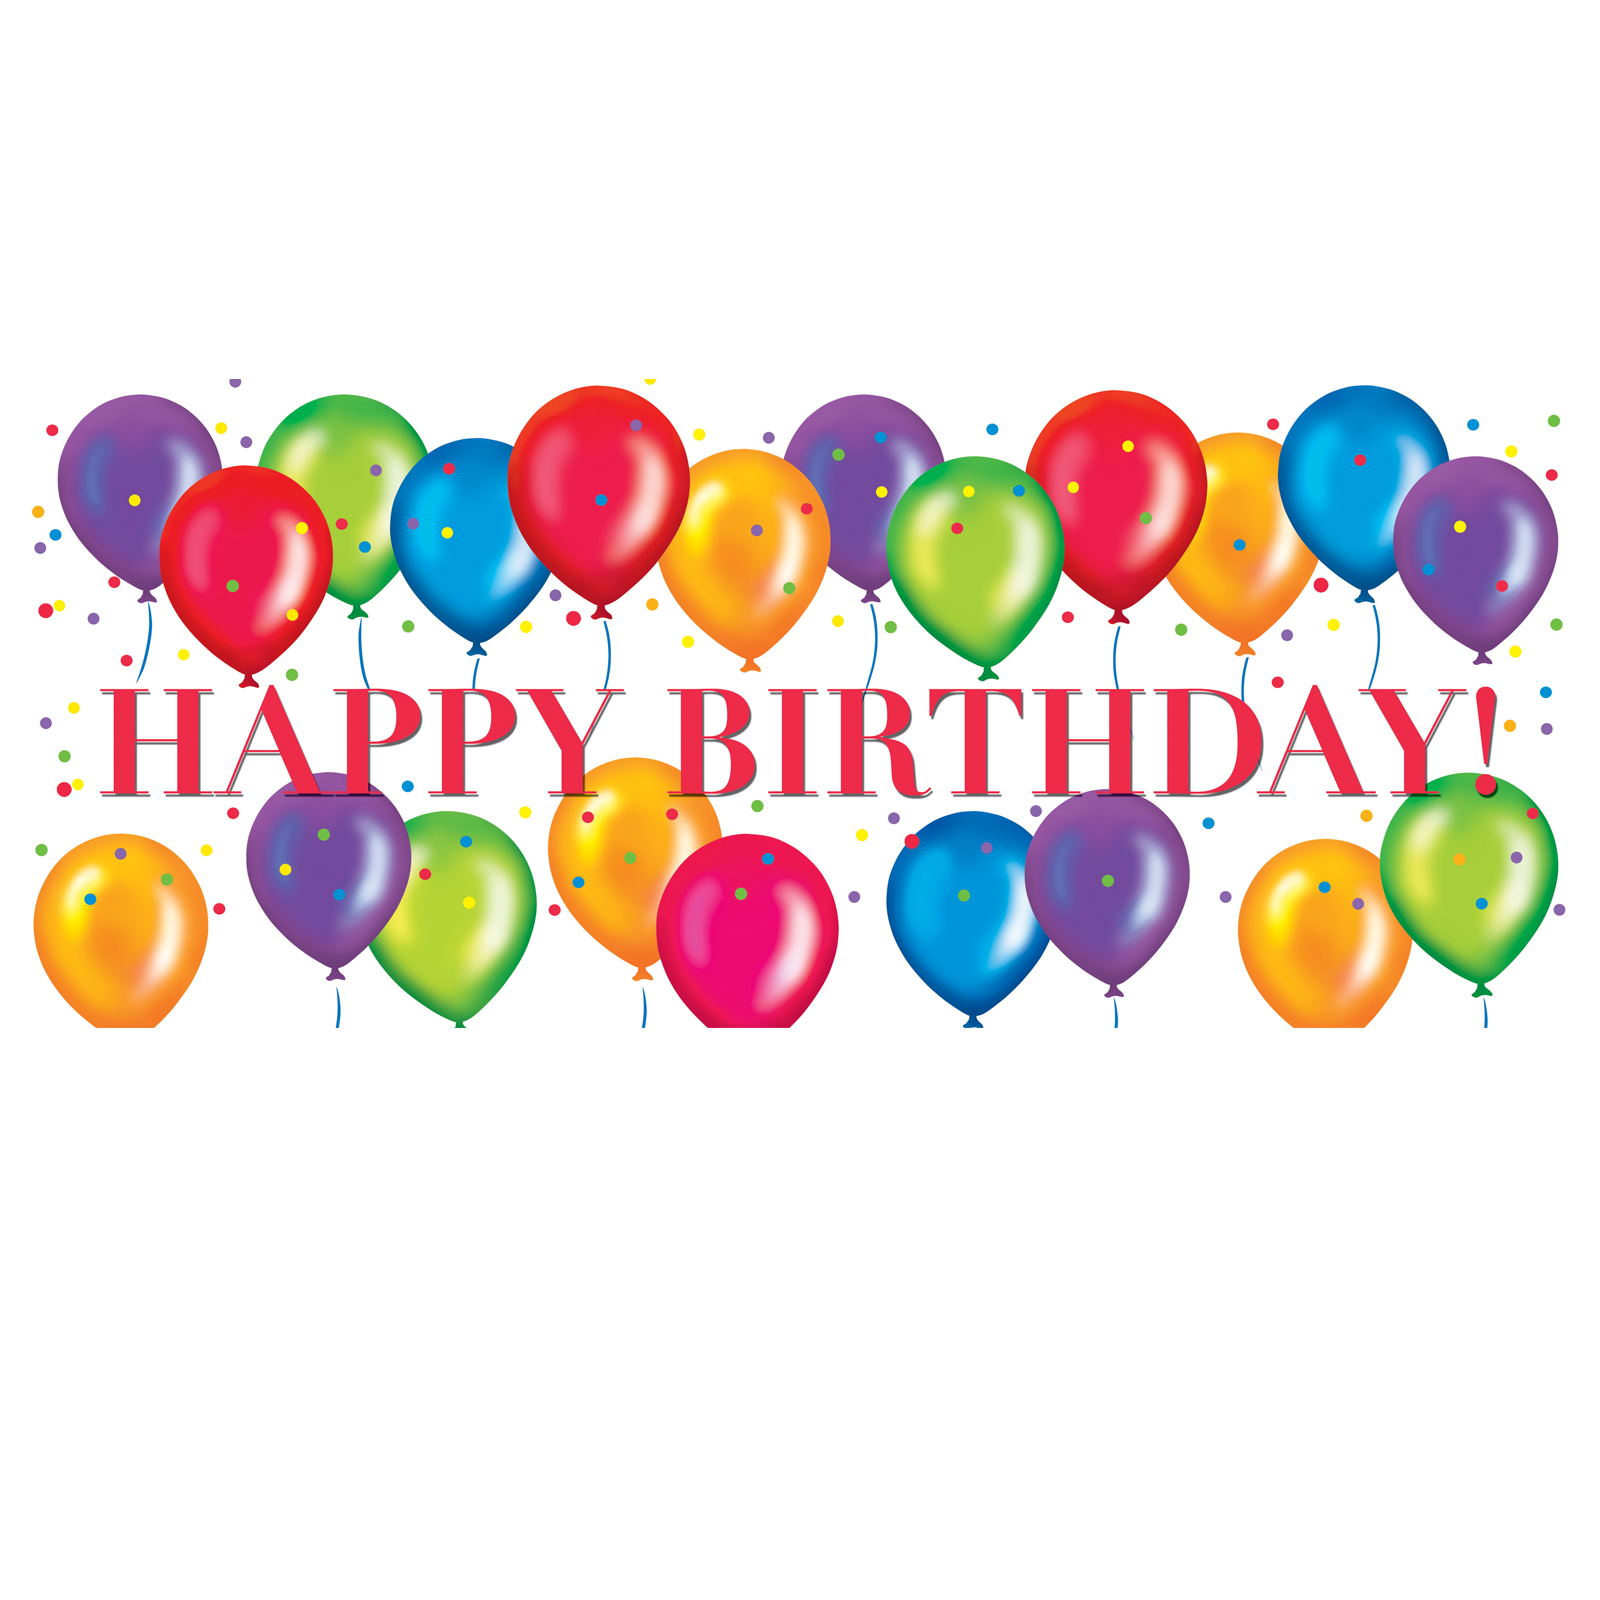 1600x1600 Free Clipart Of Birthday